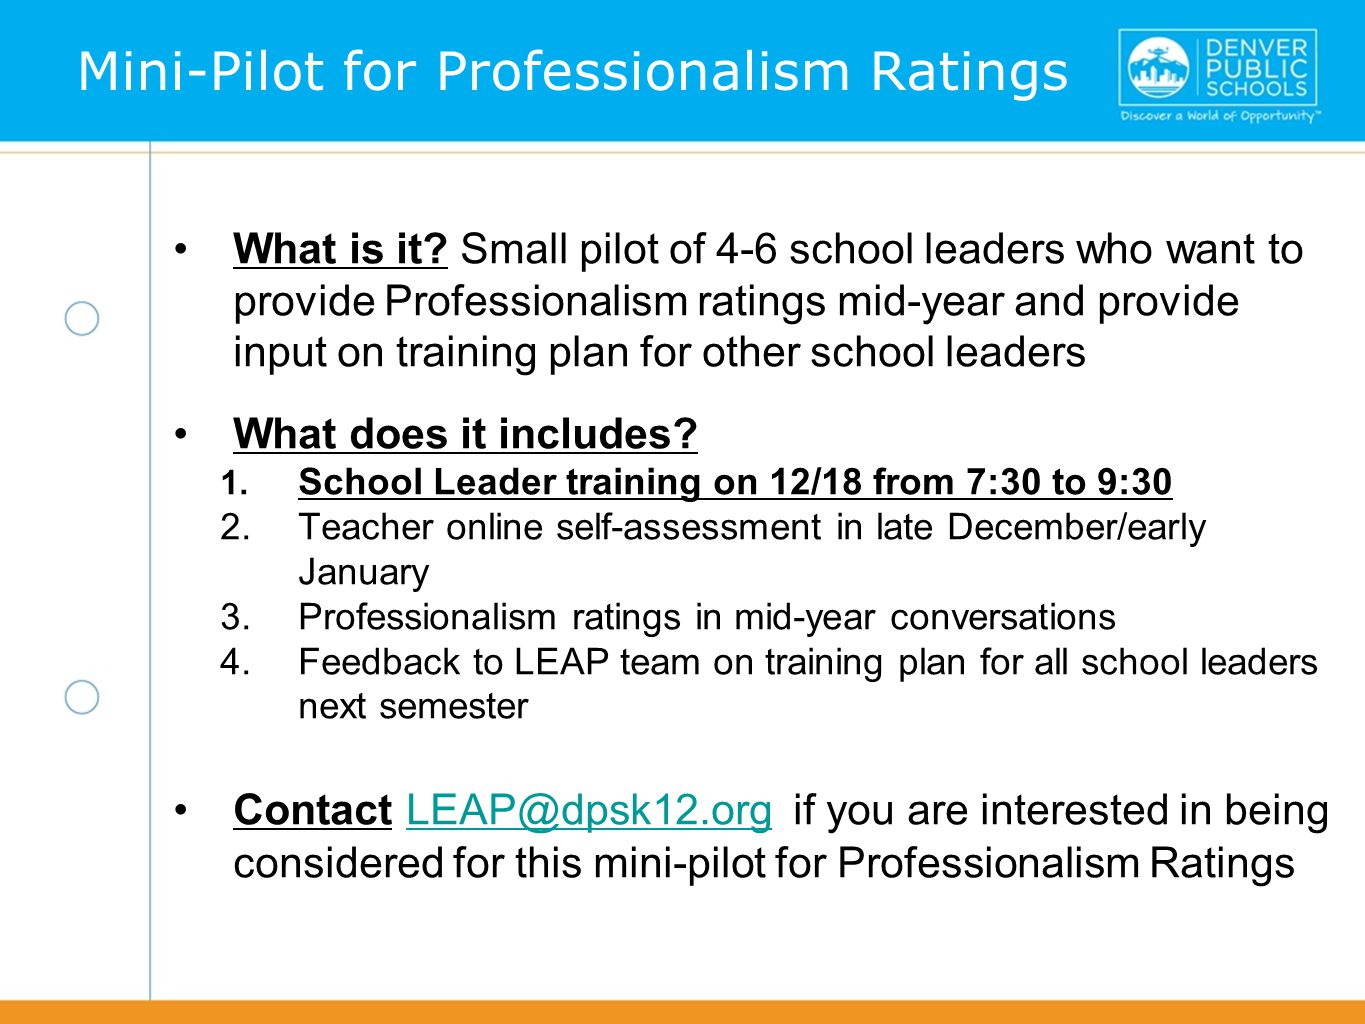 lkfjasl;kfjal;sdkfja;lsdkfj What is it? Small pilot of 4-6 school leaders who want to provide Professionalism ratings mid-year and provide input on tr